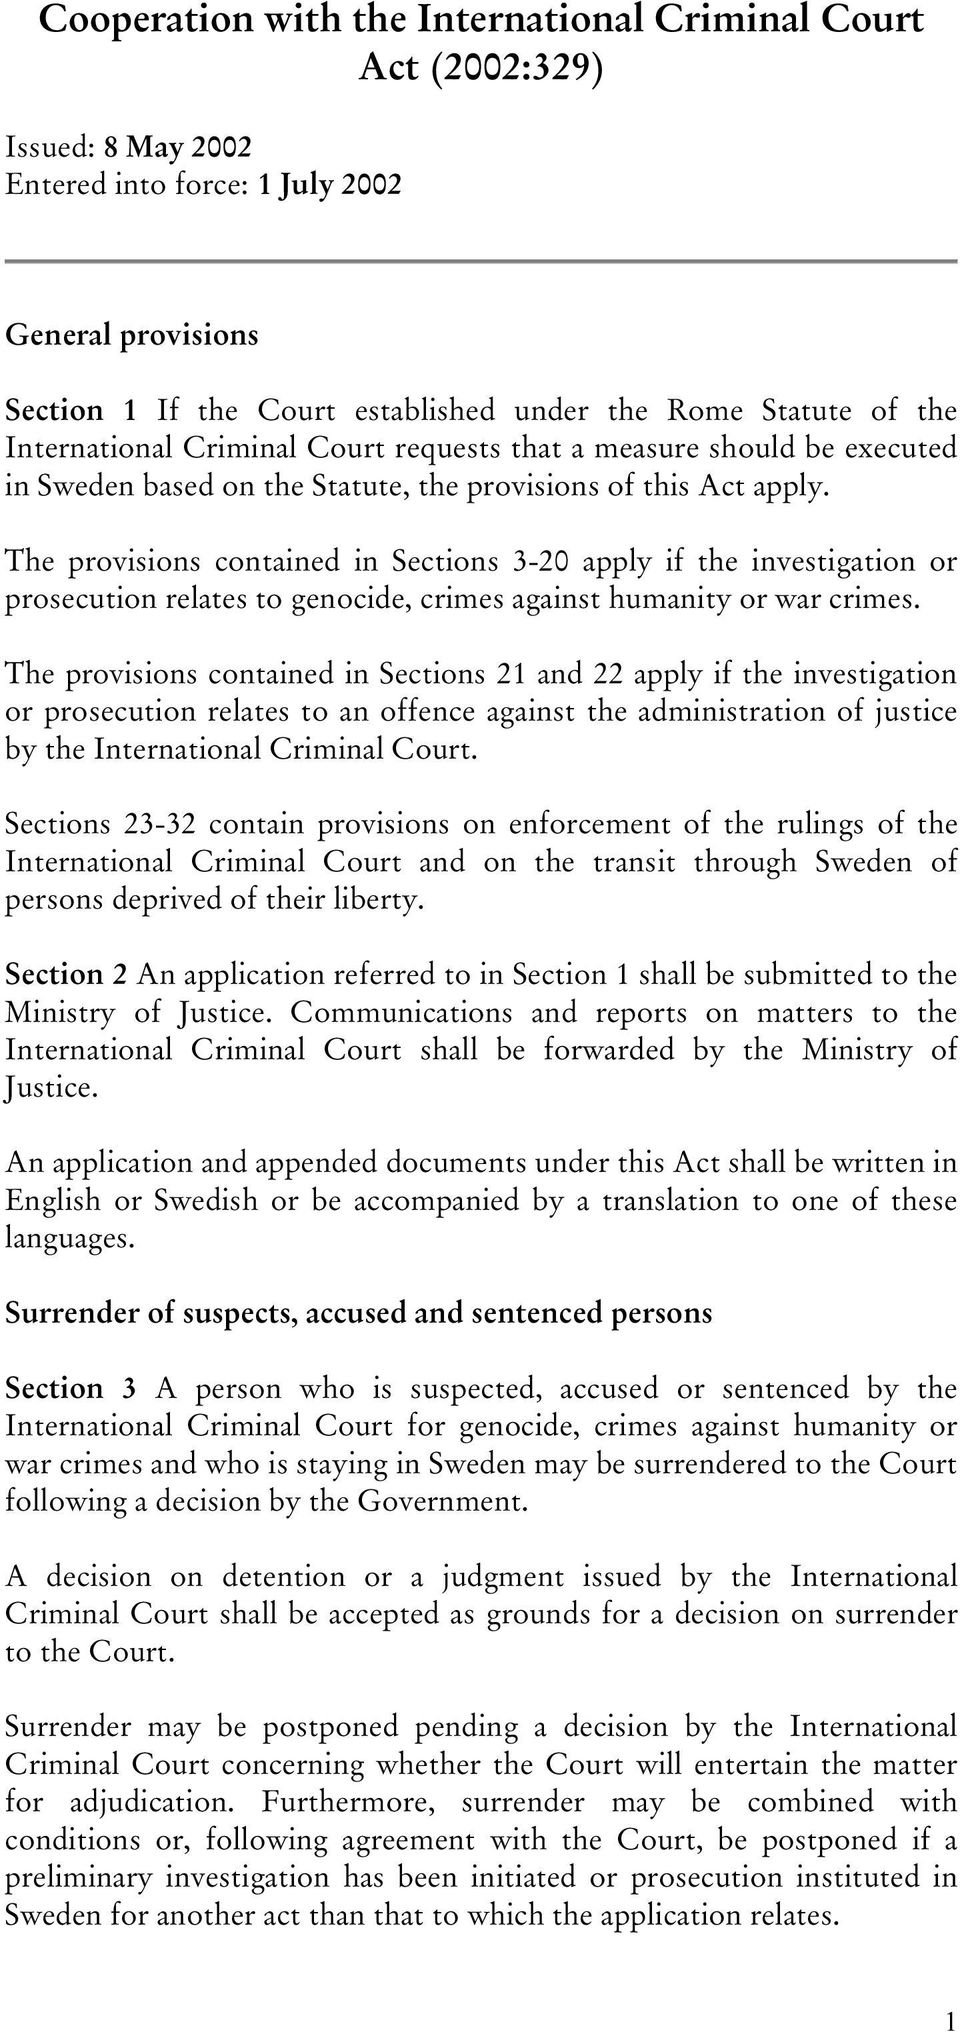 The provisions contained in Sections 3-20 apply if the investigation or prosecution relates to genocide, crimes against humanity or war crimes.